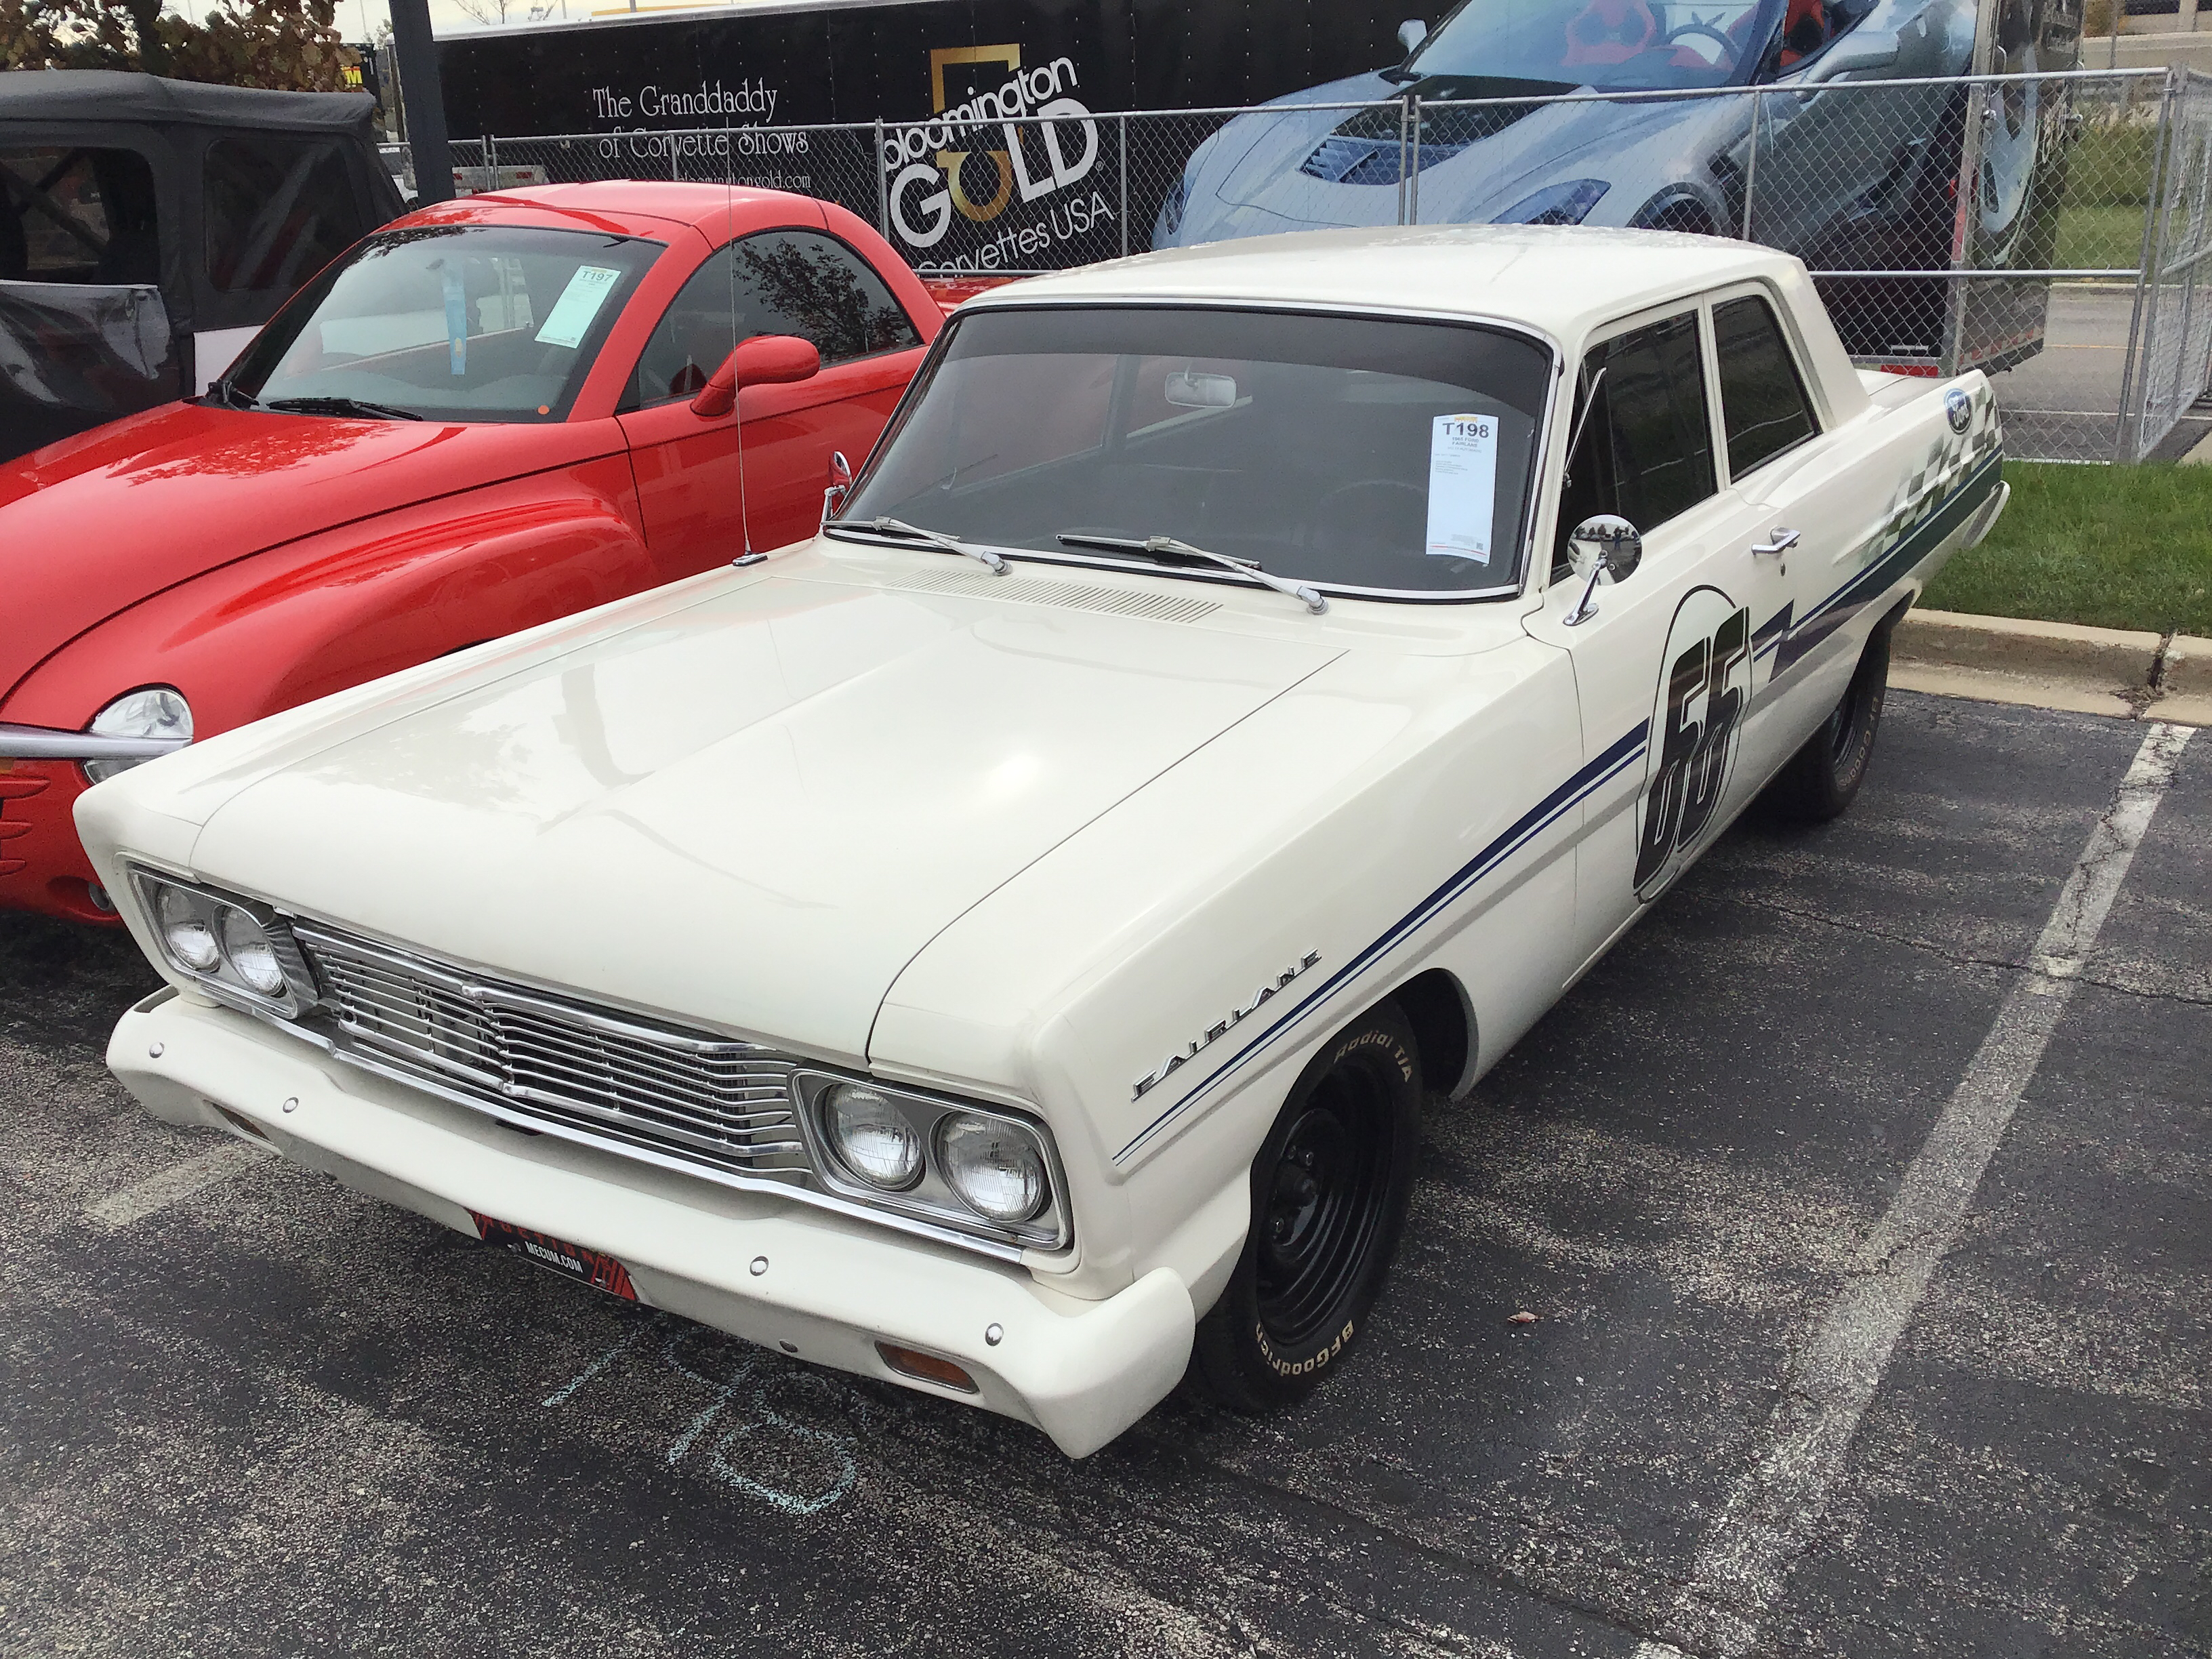 1965 Ford Fairlane Values | Hagerty Valuation Tool®